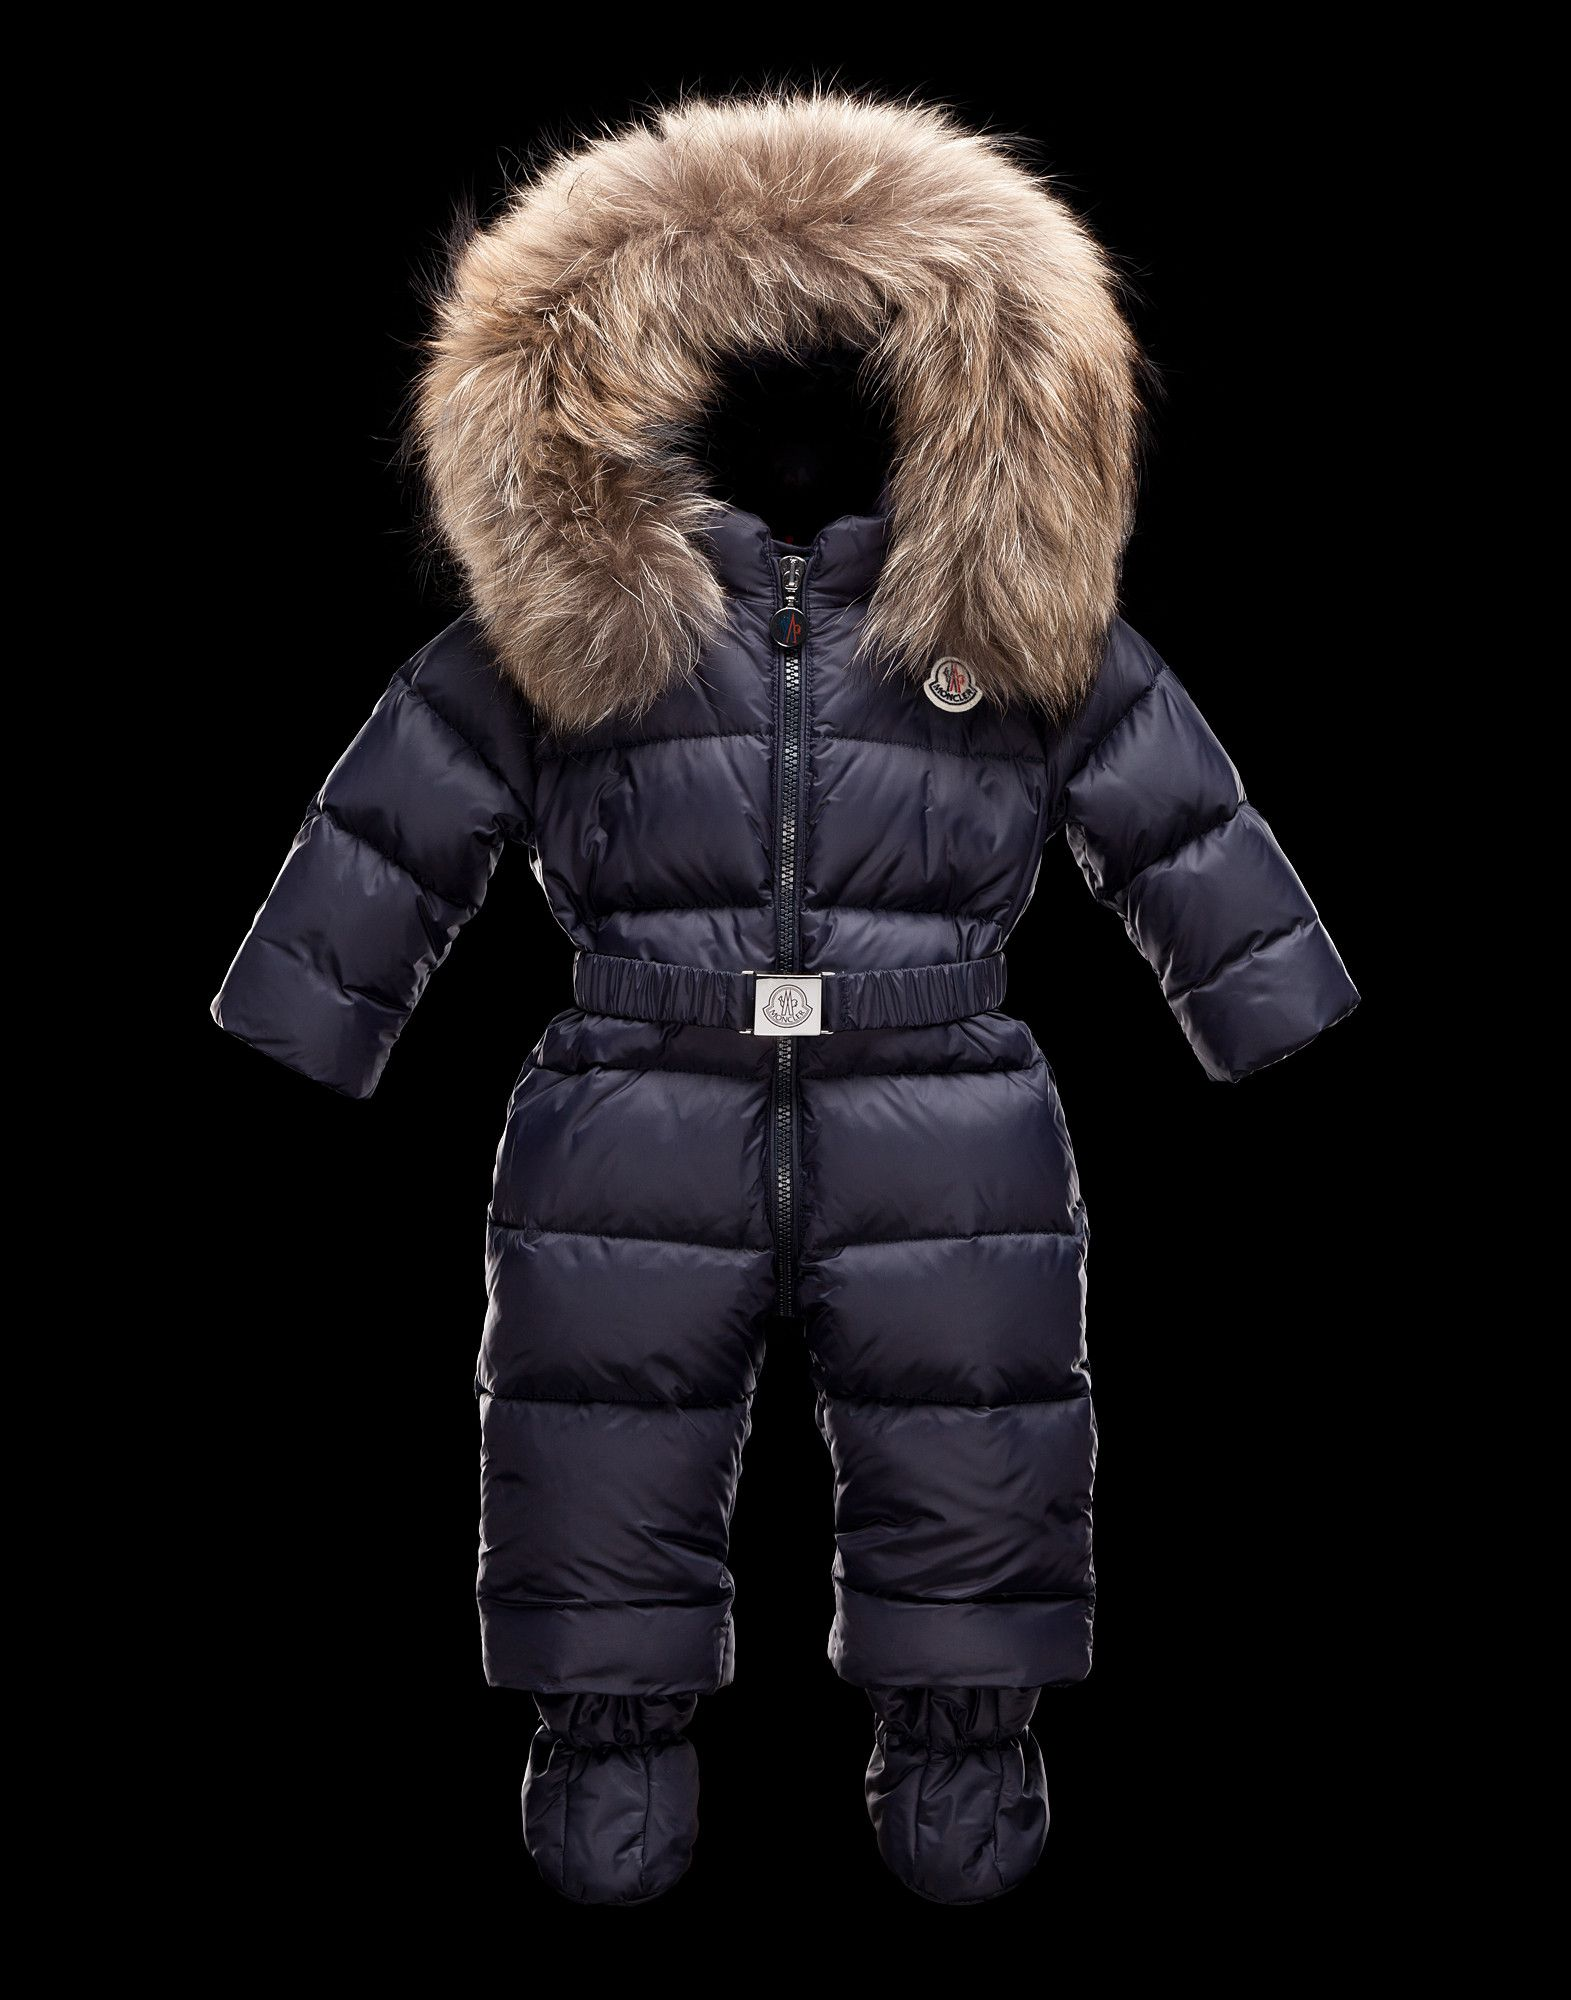 4d92c412d636 MONCLER ENFANT - Autumn Winter 12-13 - OUTERWEAR - All in one ...